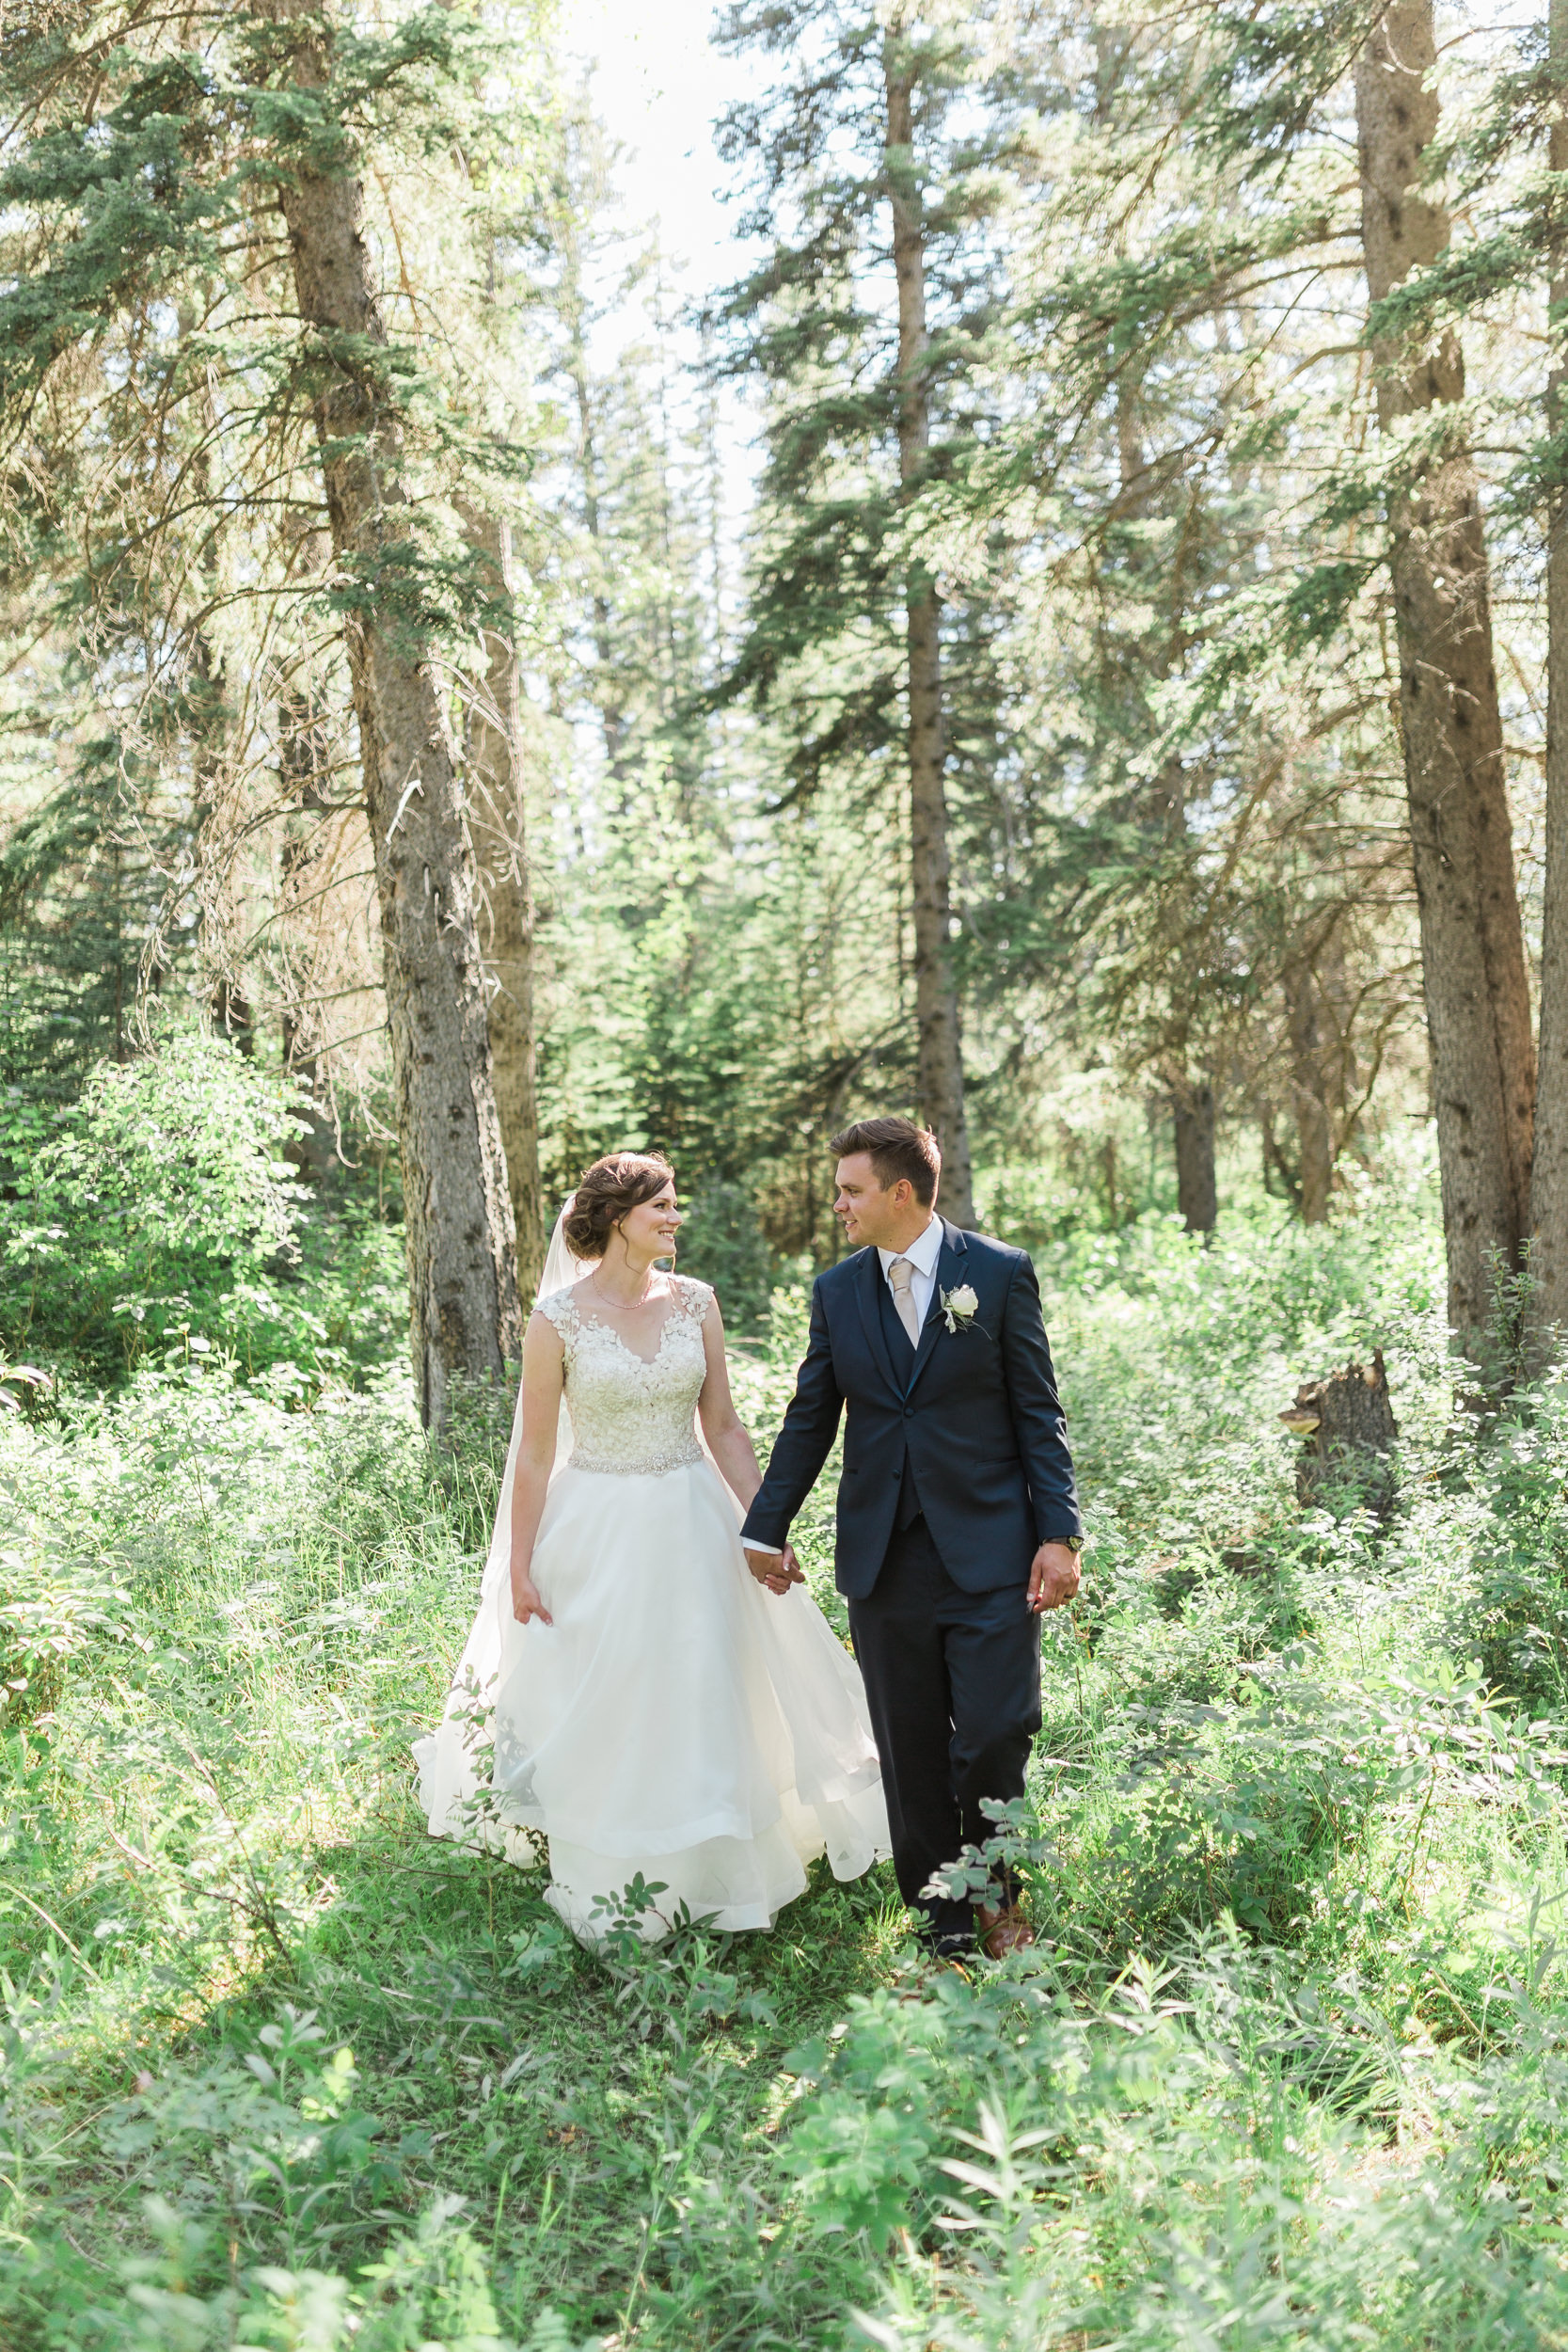 Romantic wedding in Griffith Woods Park in Calgary